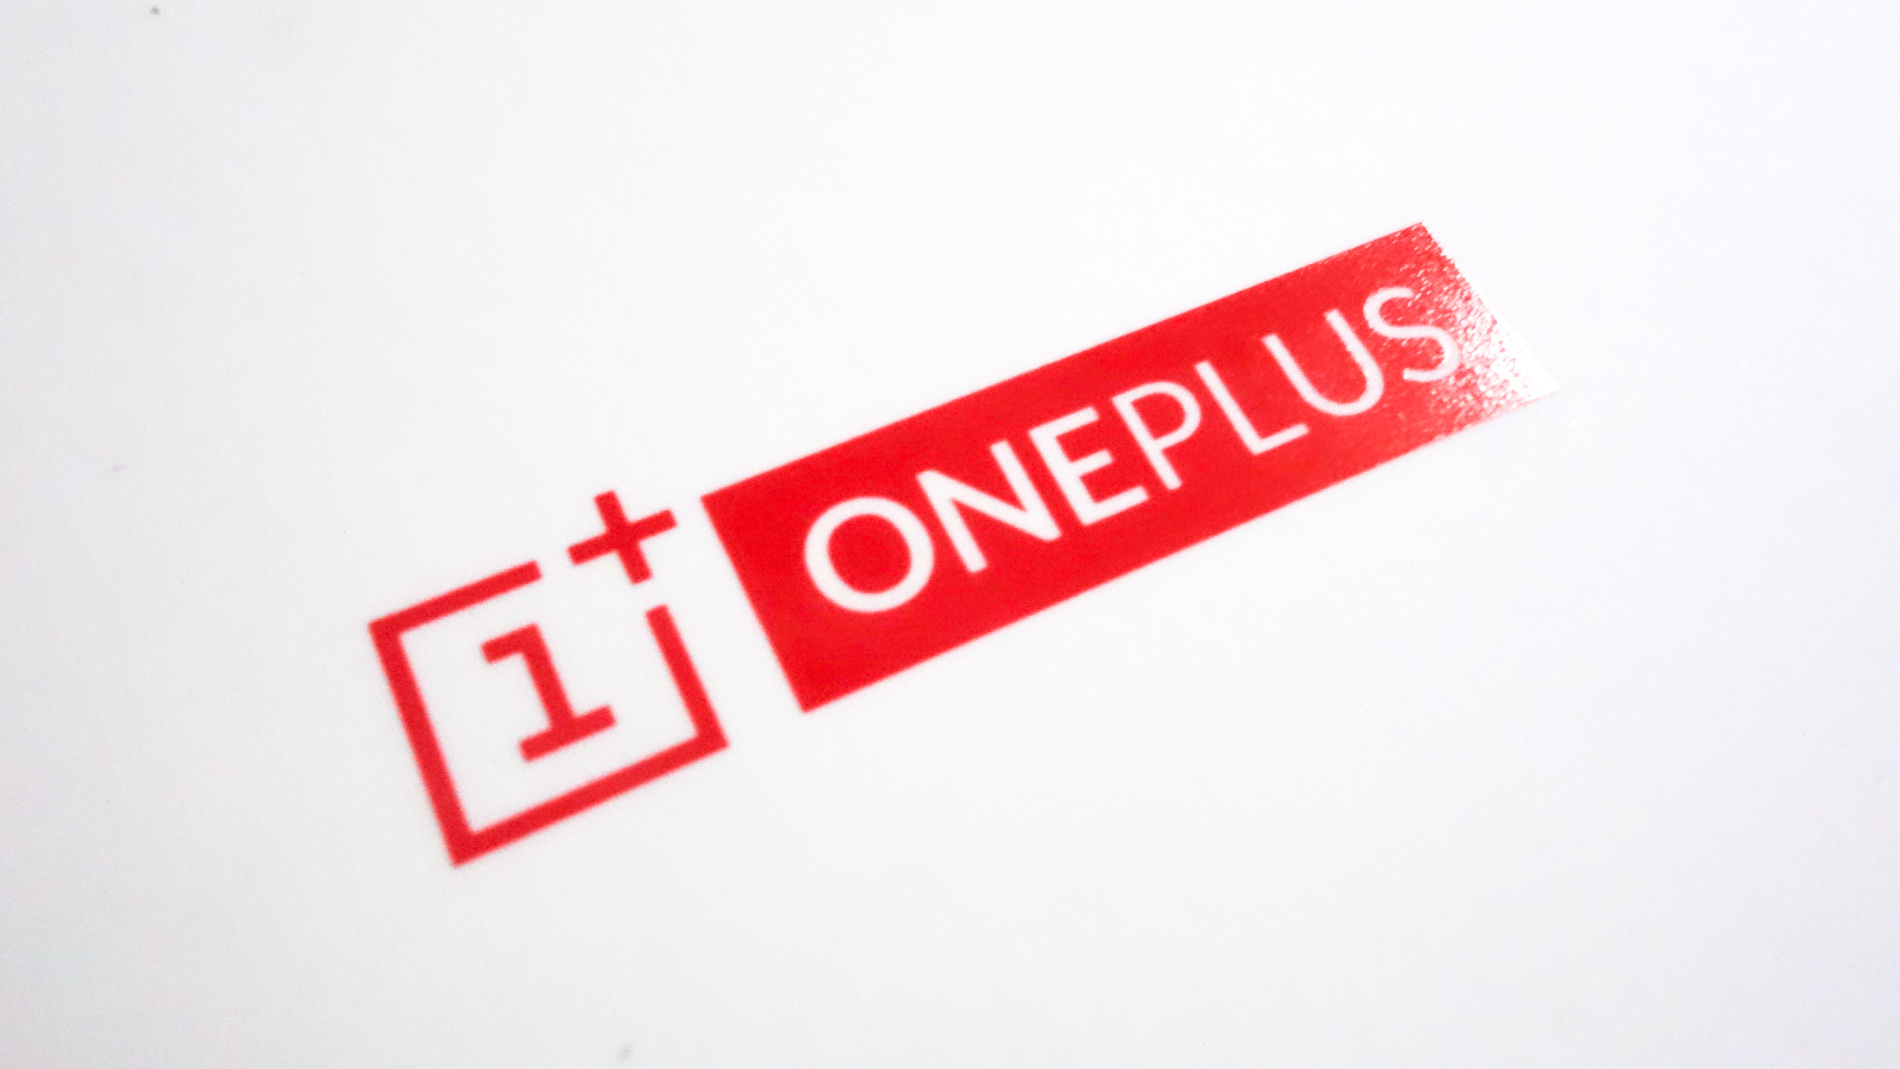 Oneplus 3 Wallpaper Hd Oneplus 2 What We Know And What We Don T